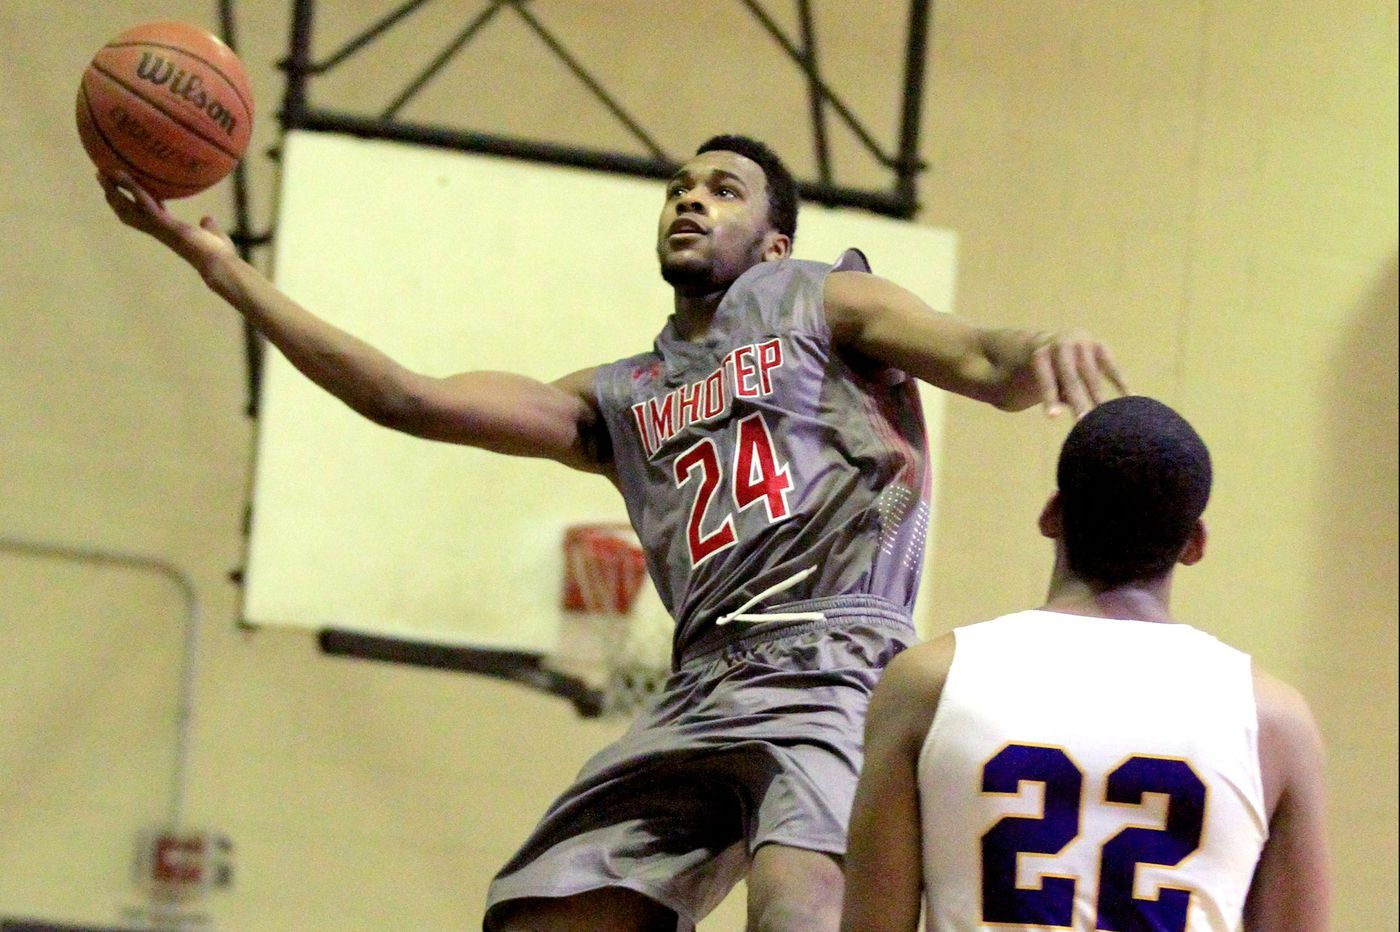 Imhotep basketball star Donta Scott commits to Maryland